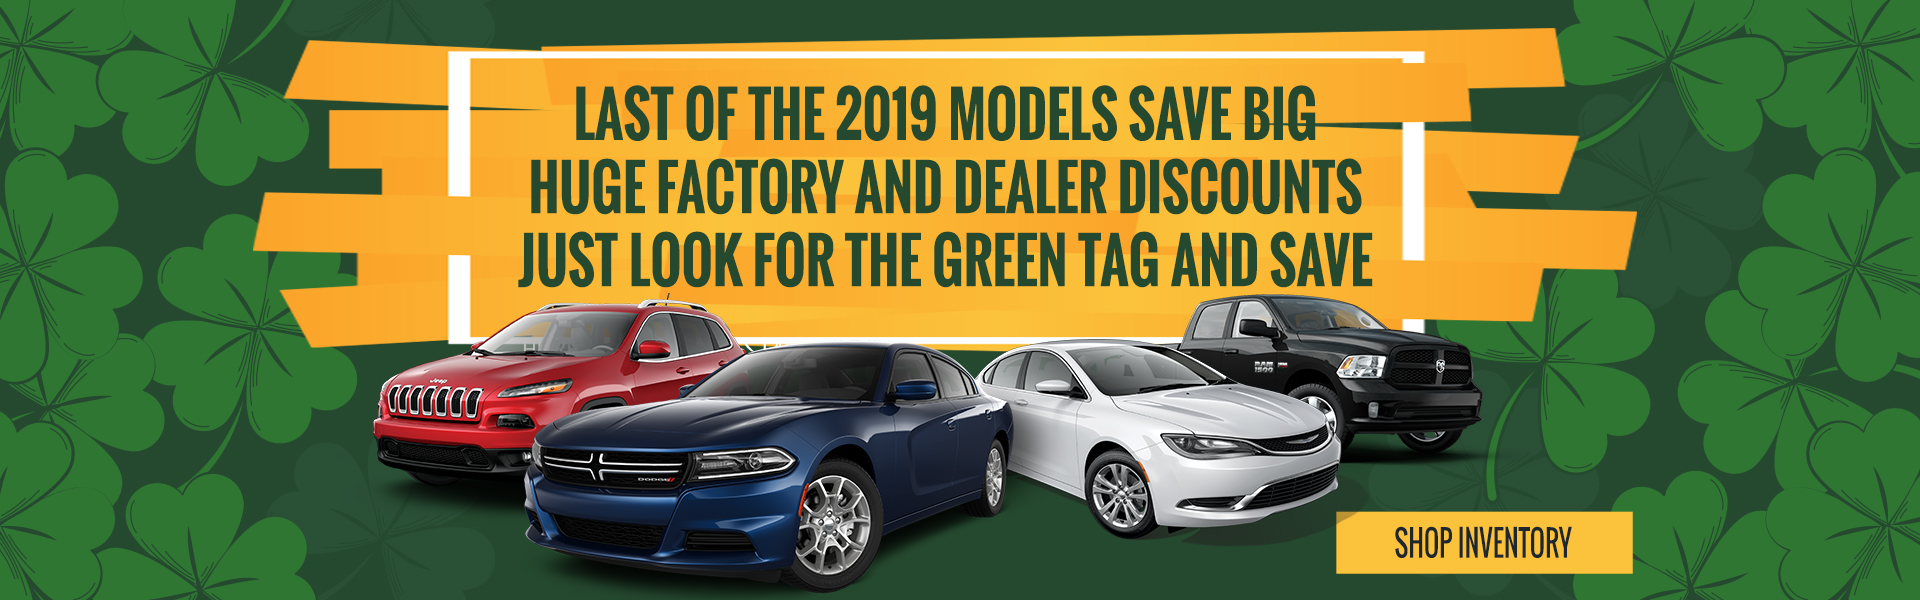 LAST OF THE 2019 MODELS SAVE BIG HUGE FACTORY AND DEALER DISCOUNTS JUST LOOK THE GREEN TAG AND SAVE